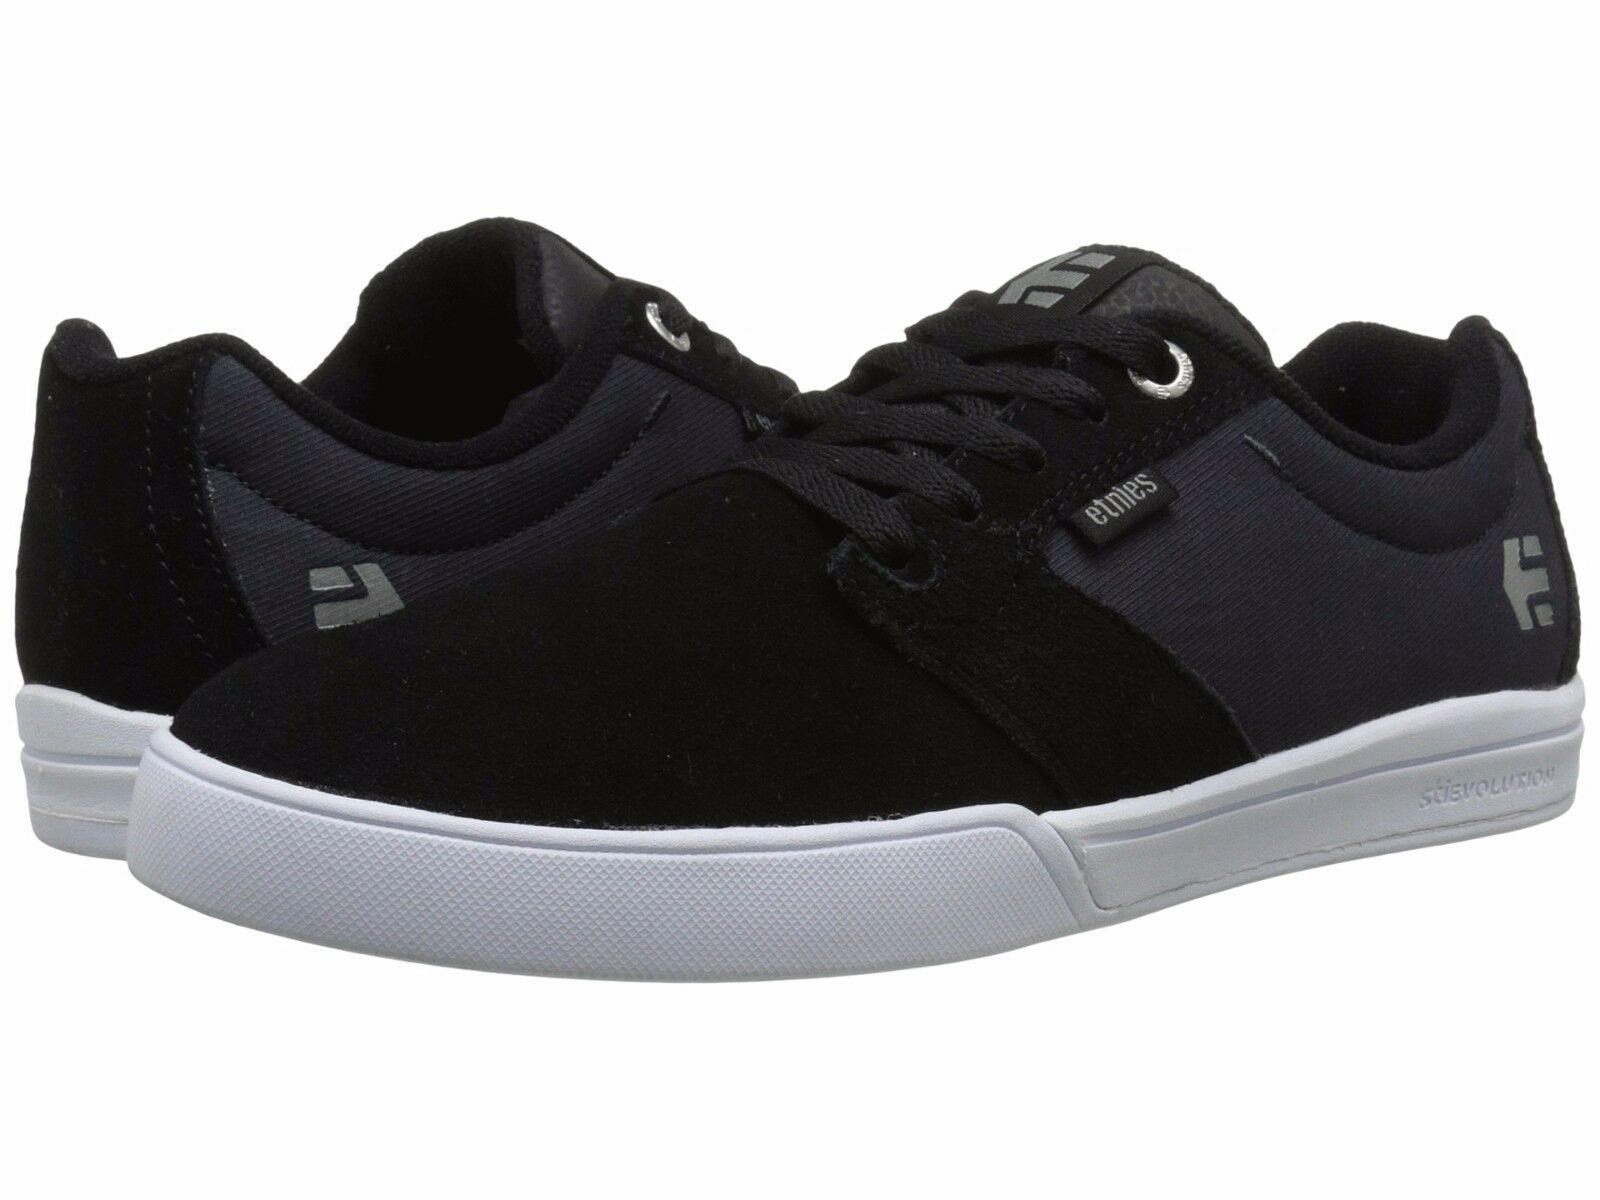 MENS ETNIES JAMESON E LITE SKATEBOARDING SHOES NIB BLACK NAVY